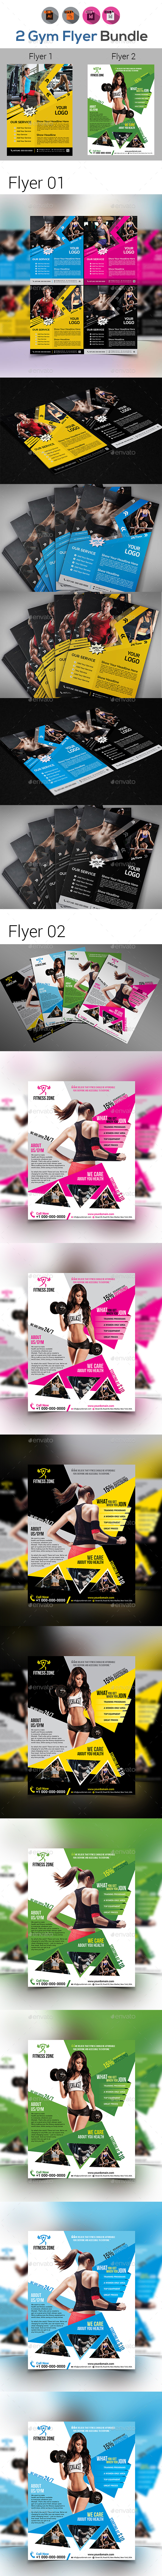 Fitness Flyer - Gym Flyer Bundle V3